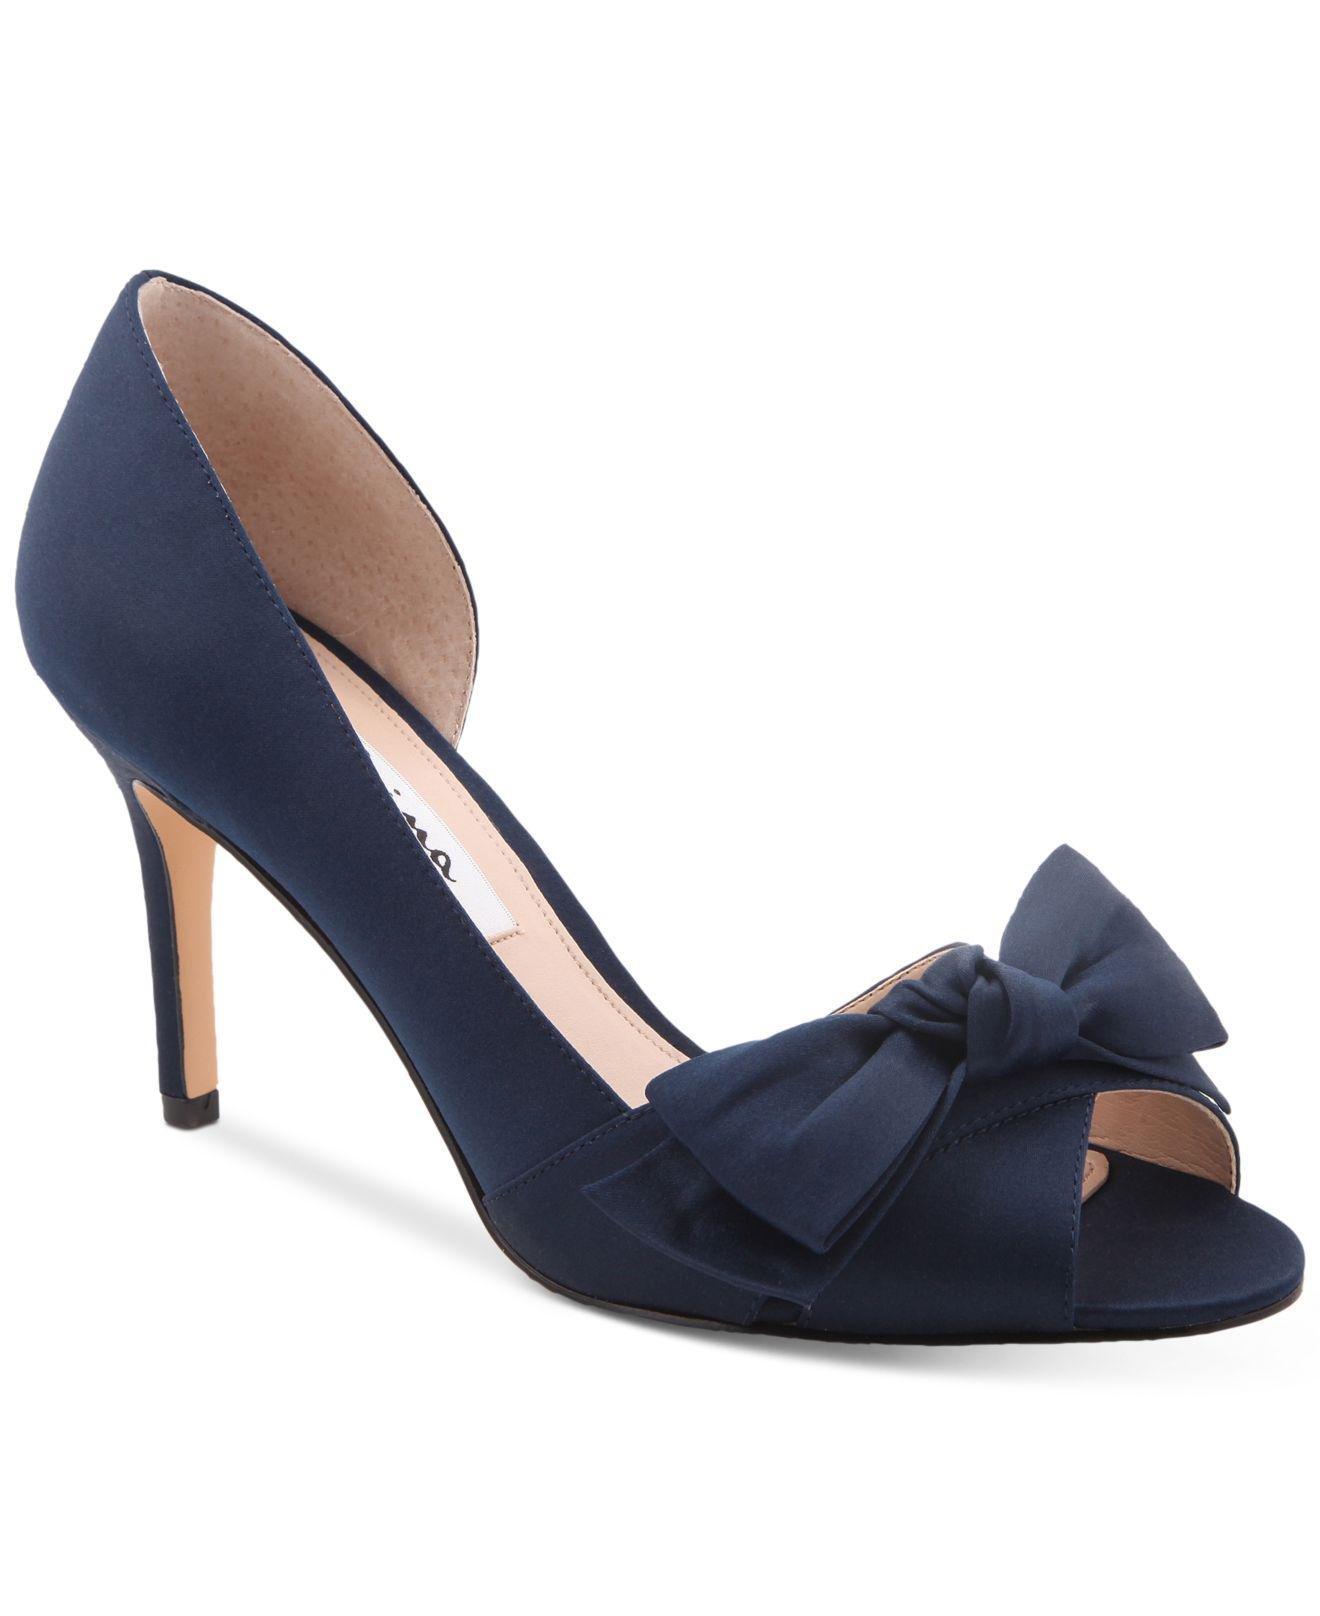 555a2ecf3bd7 Lyst - Nina Forbes 2 Bow Peep-toe D orsay Evening Pumps in Blue